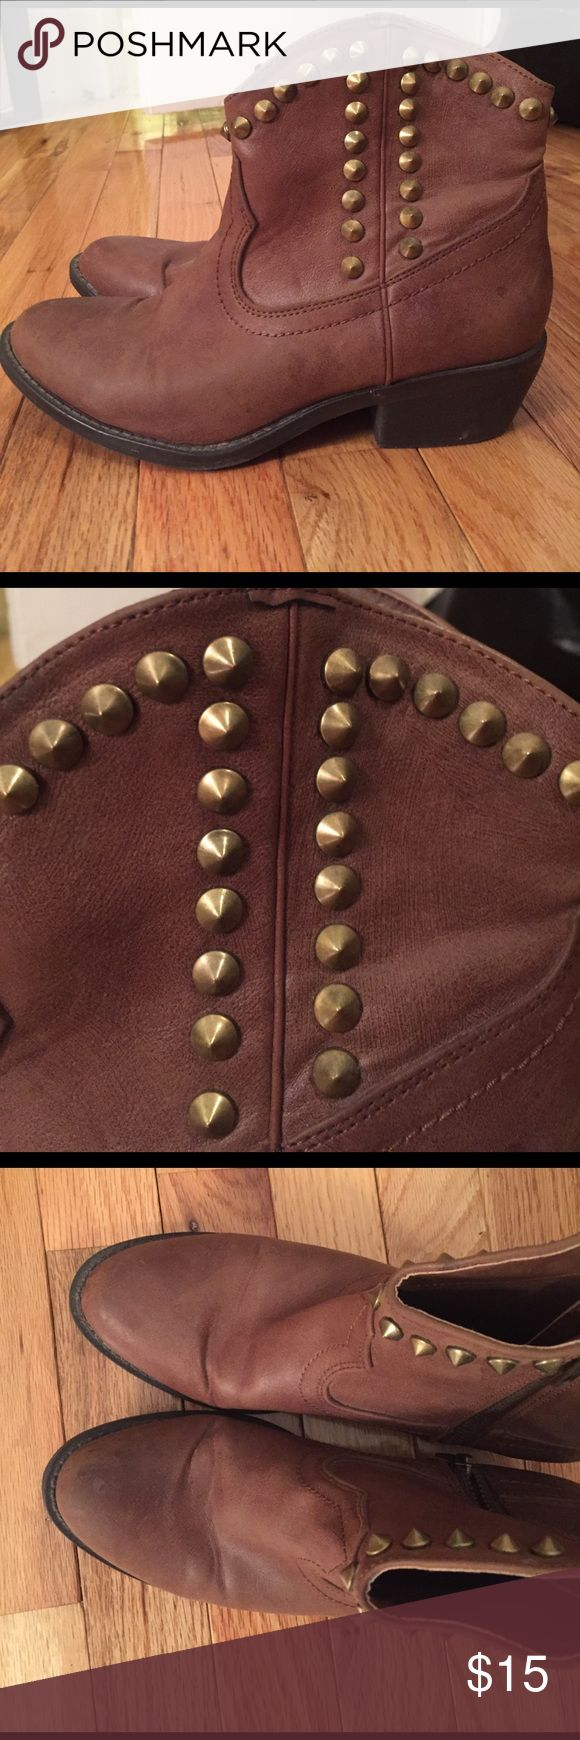 Mossimo Short studded cow boy boots 6.5 Cute short cowboy boots with studs and pointed toe, brown. size 6.5, Original $29.99, selling for $15 Mossimo Supply Co Shoes Ankle Boots & Booties